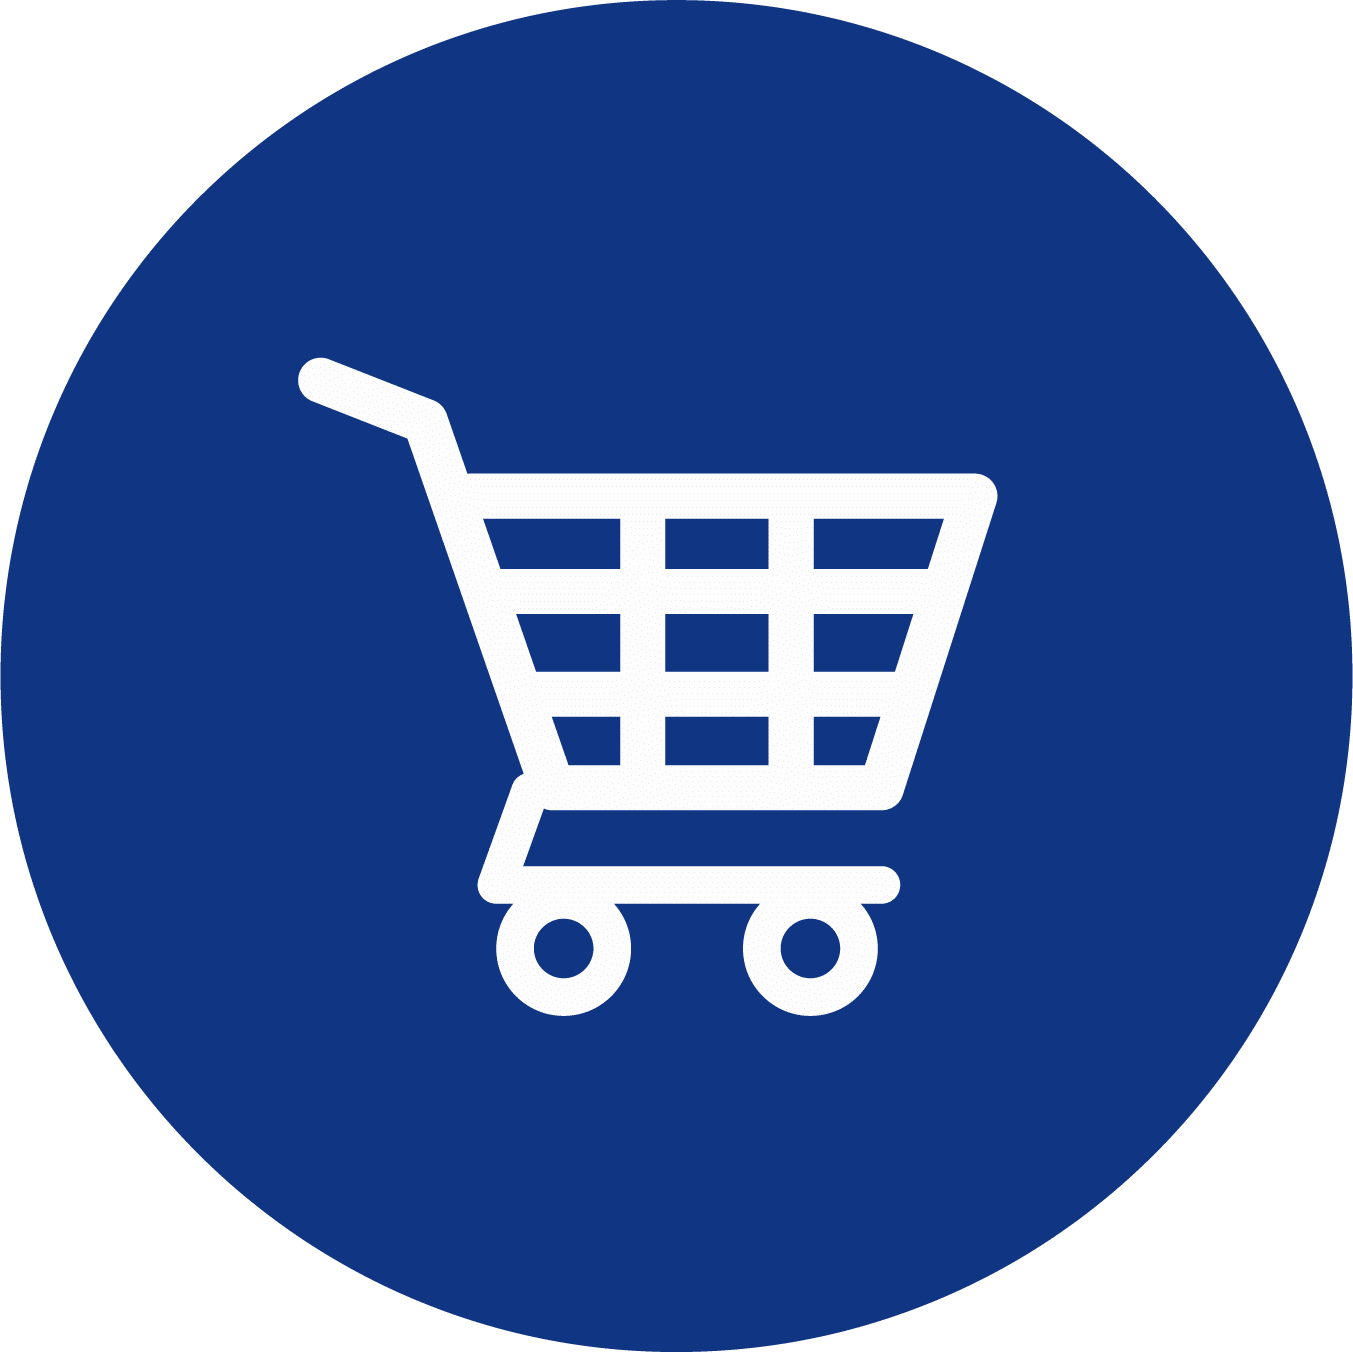 site-web-dso-logo-ecommerce